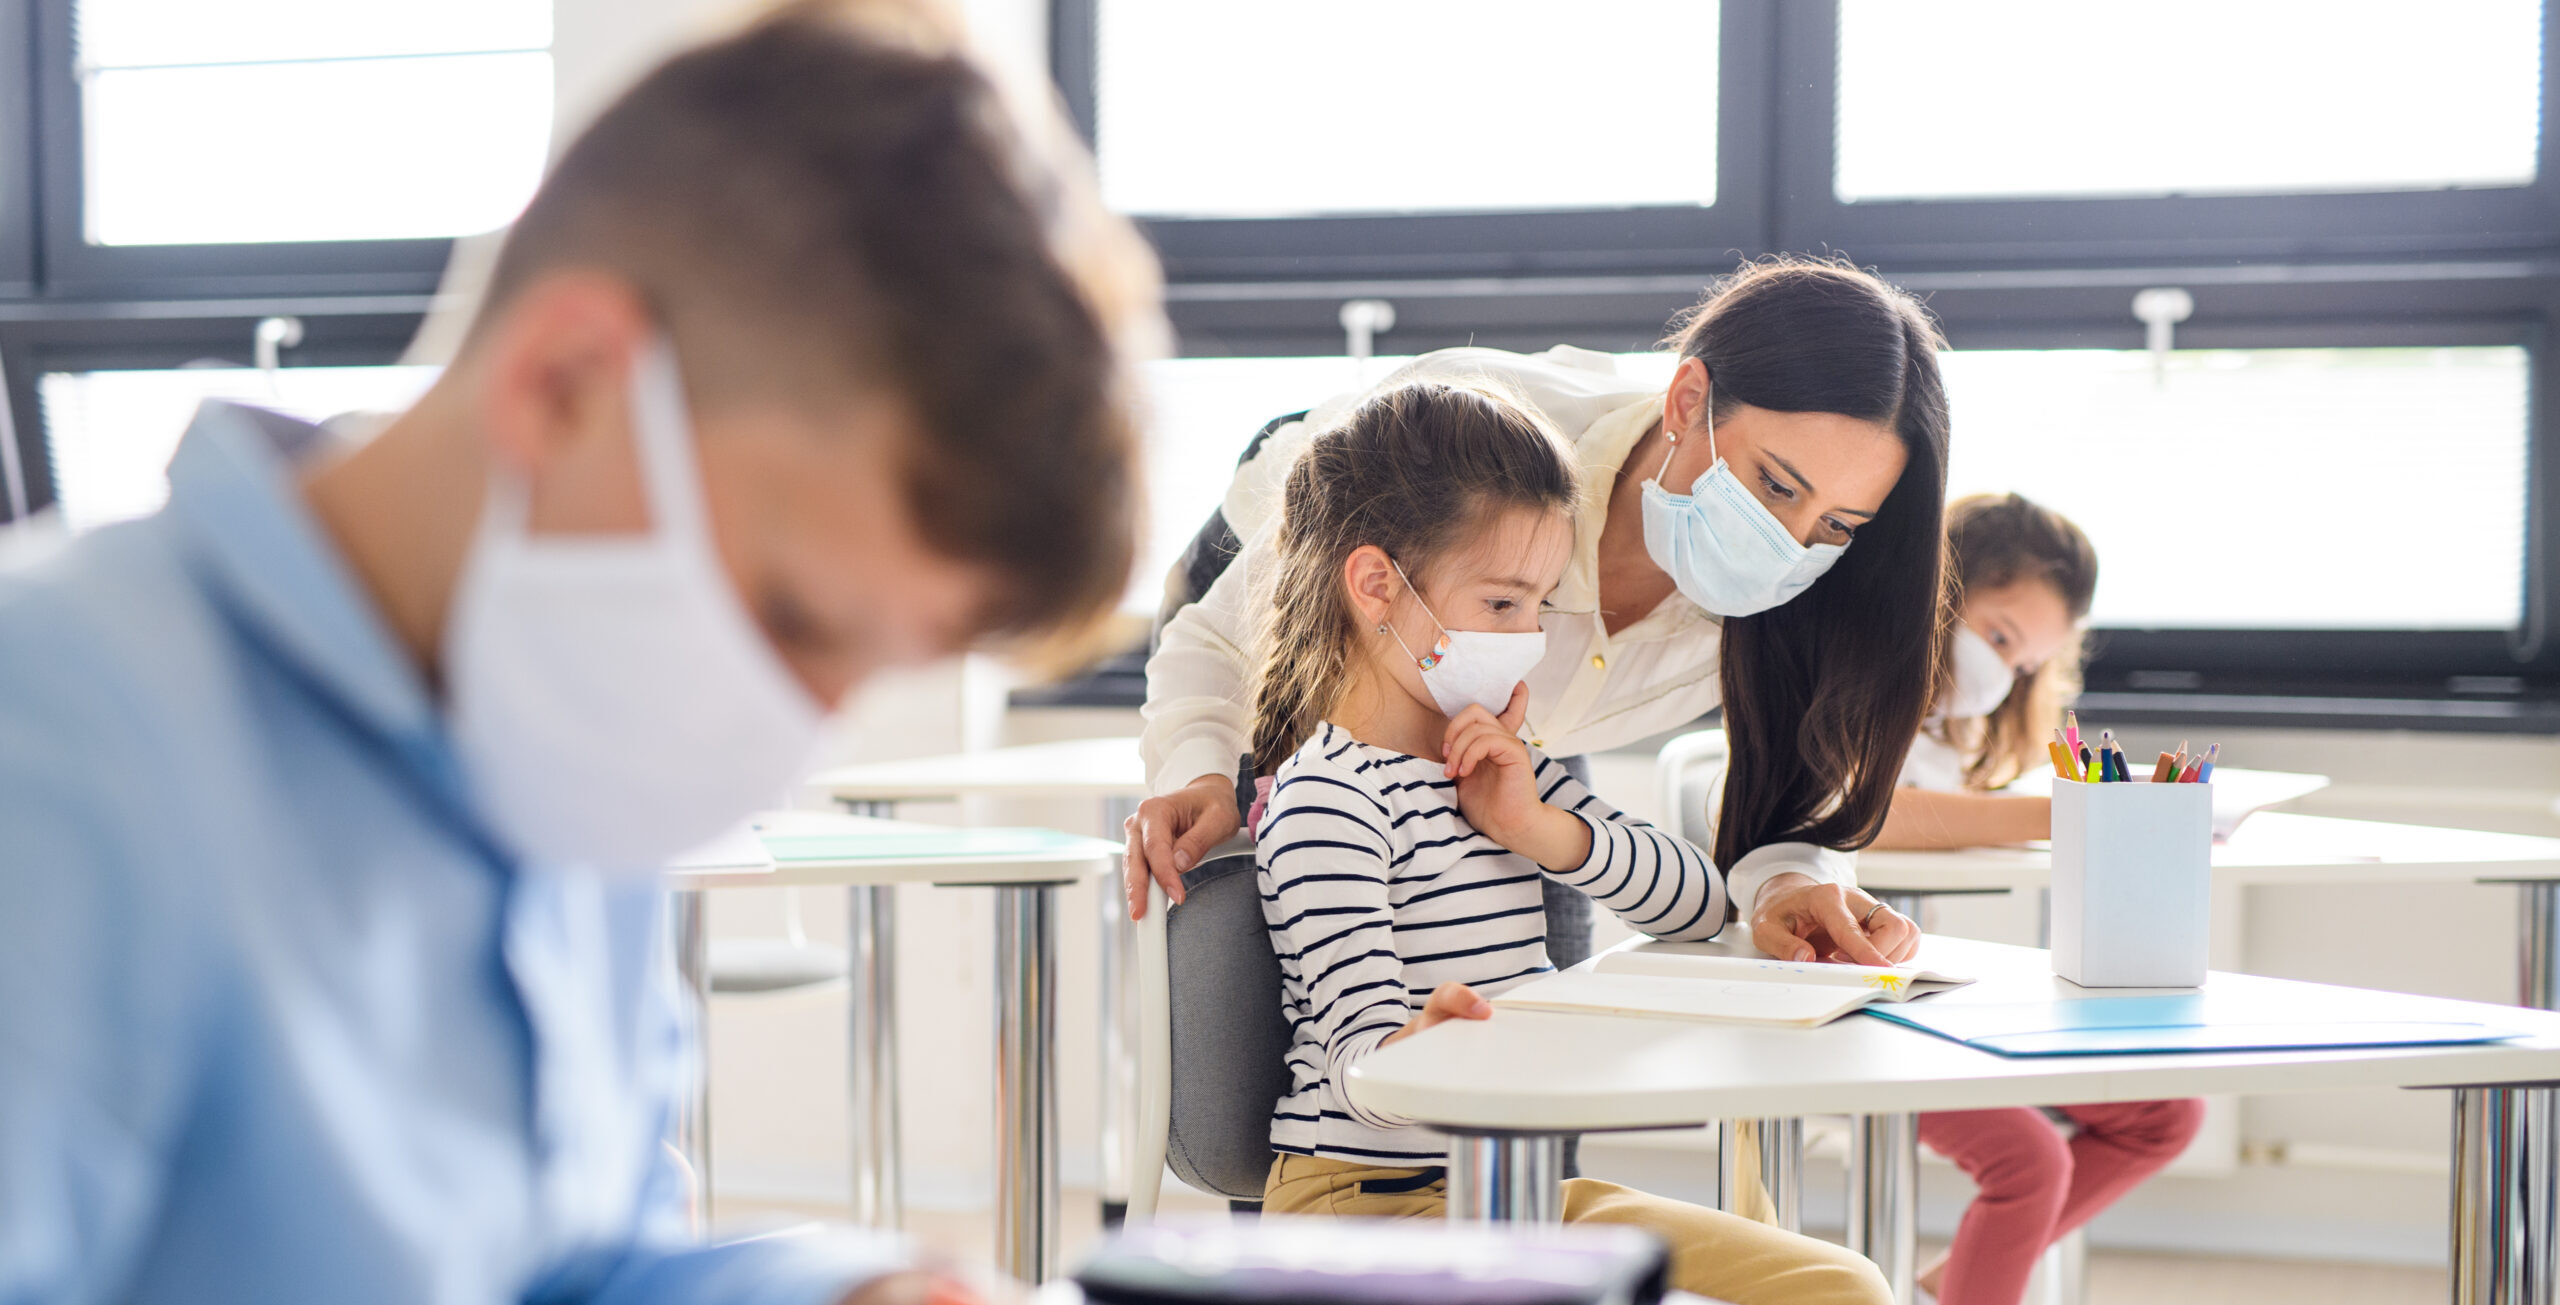 Students wearing face masks in the classroom